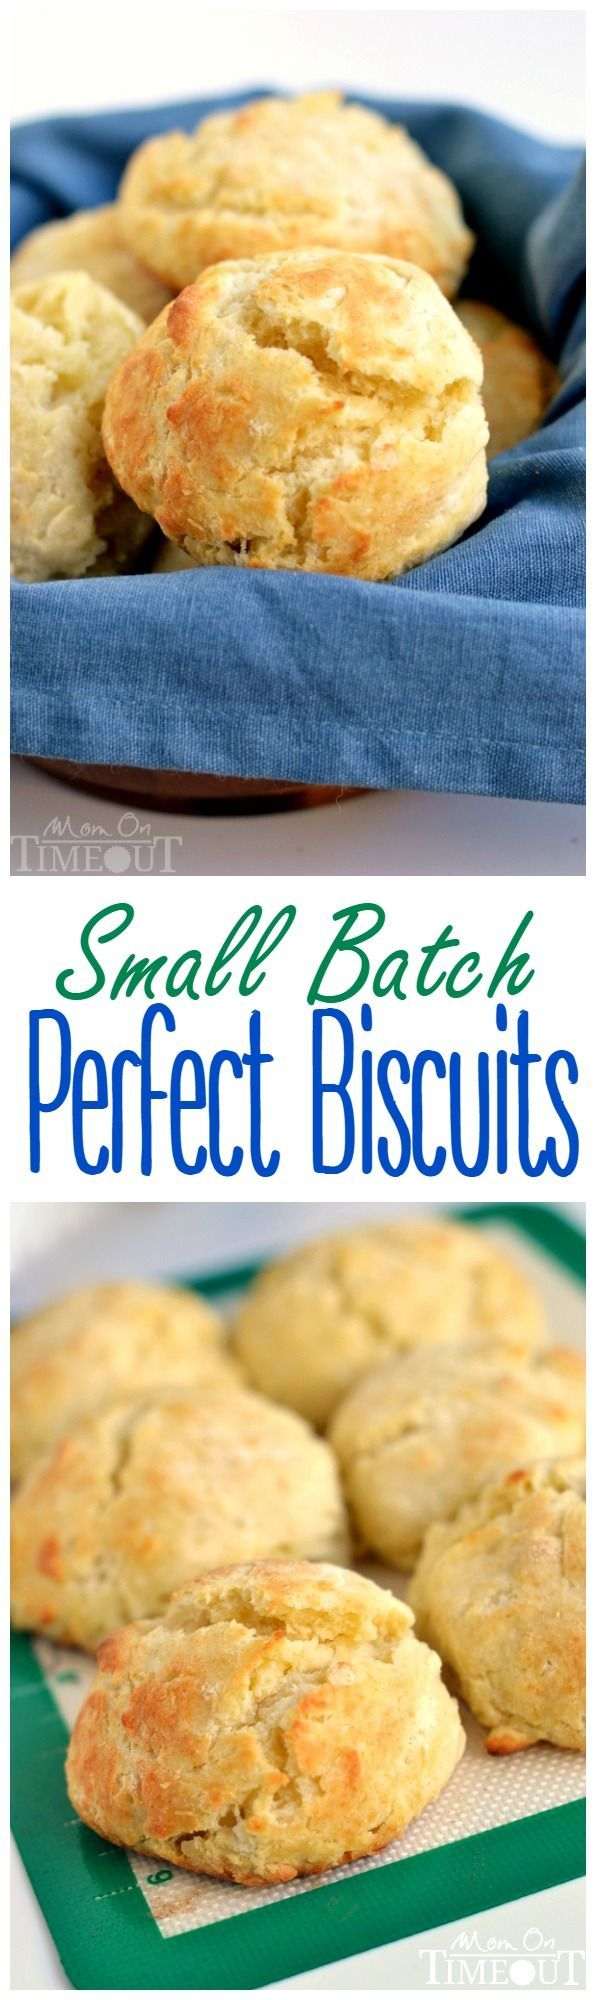 Our weekends just aren't complete without biscuits.  This easy Small Batch Perfect Biscuits recipe yields six perfect biscuits without the use of buttermilk.  Breakfast accomplished.